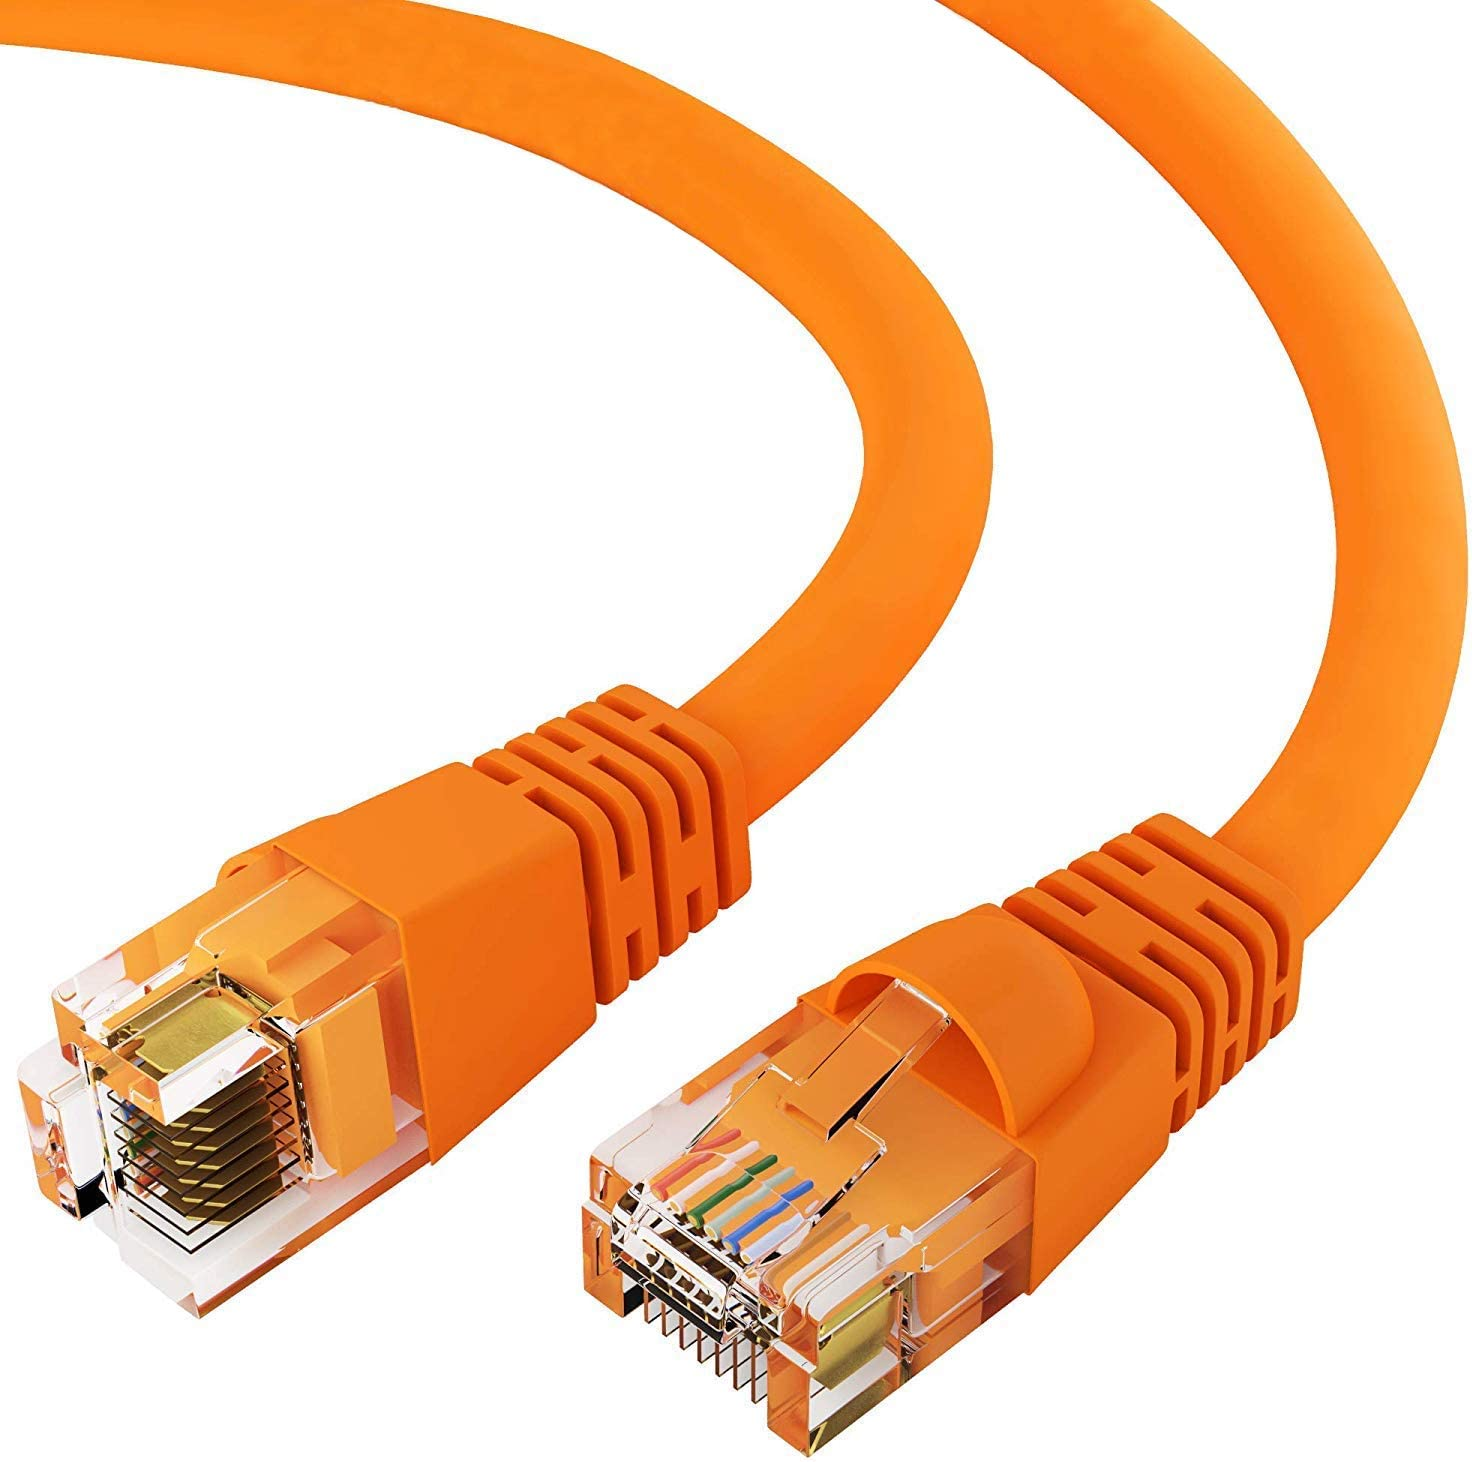 1Gigabit//Sec High Speed LAN Internet//Patch Cable GOWOS Cat5e Ethernet Cable 10-Pack - 1 Feet Gray 24AWG Network Cable with Gold Plated RJ45 Non-Booted Connector 350MHz